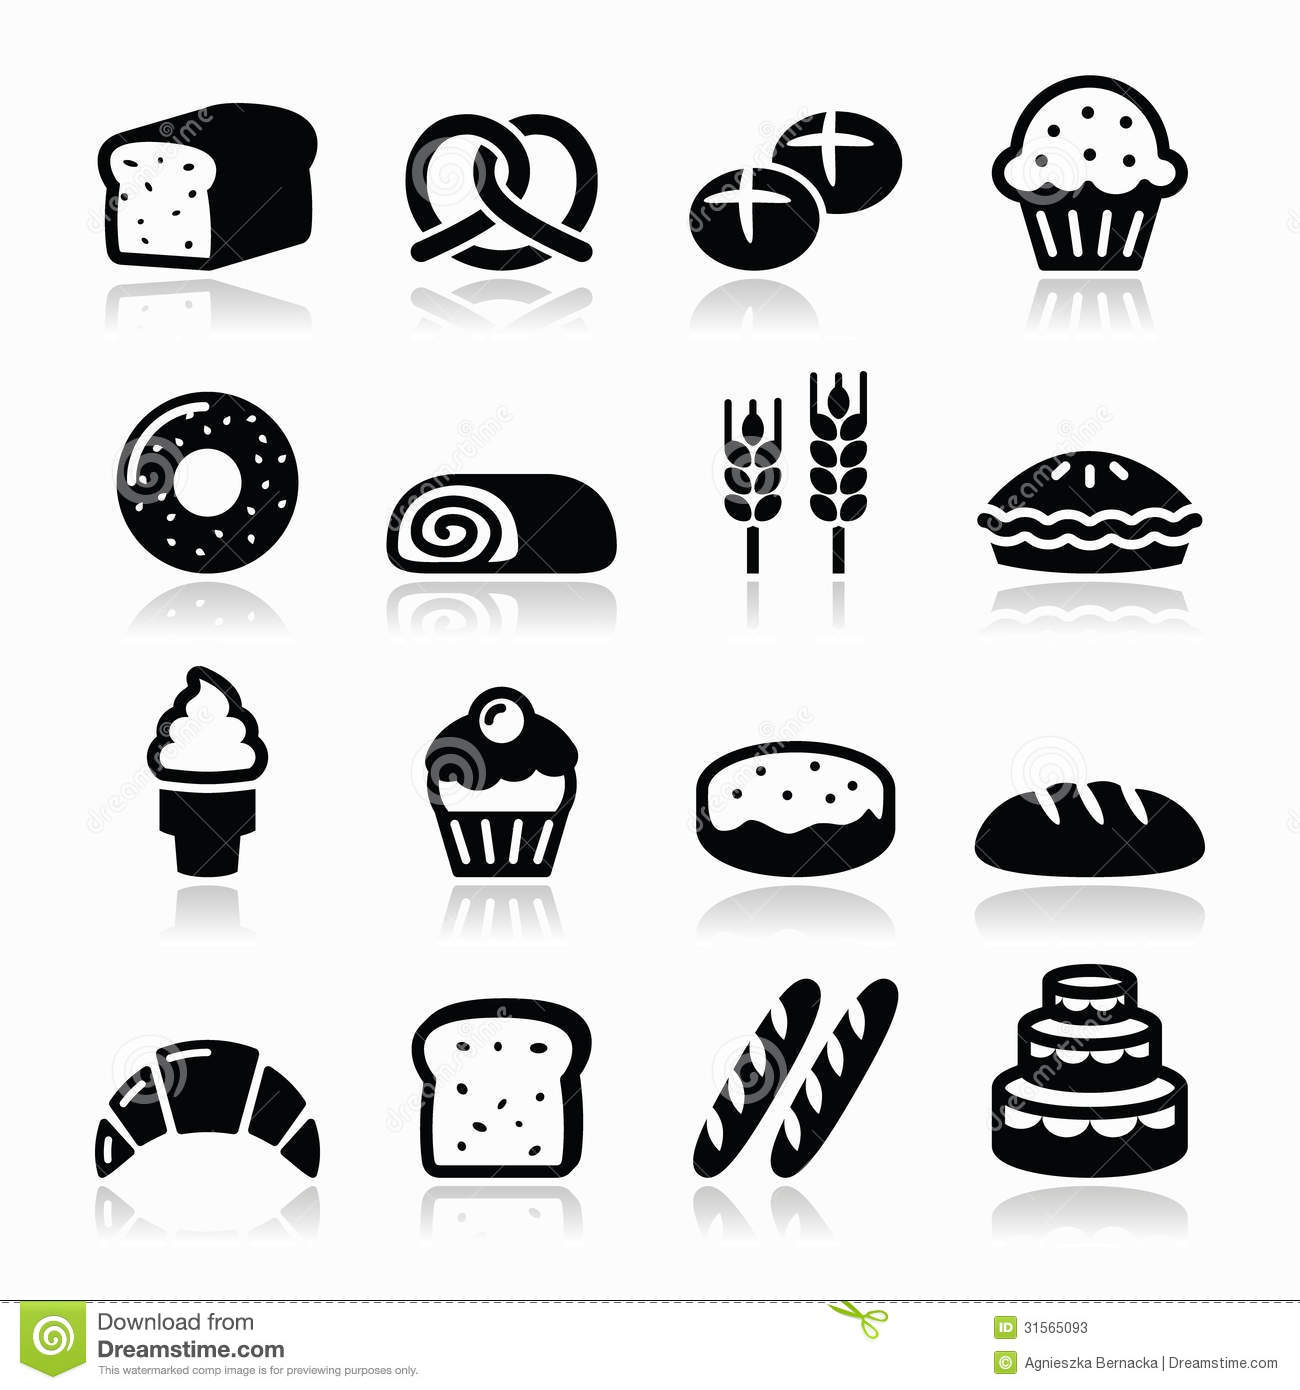 Bake Cake Vector Black And White Donuts